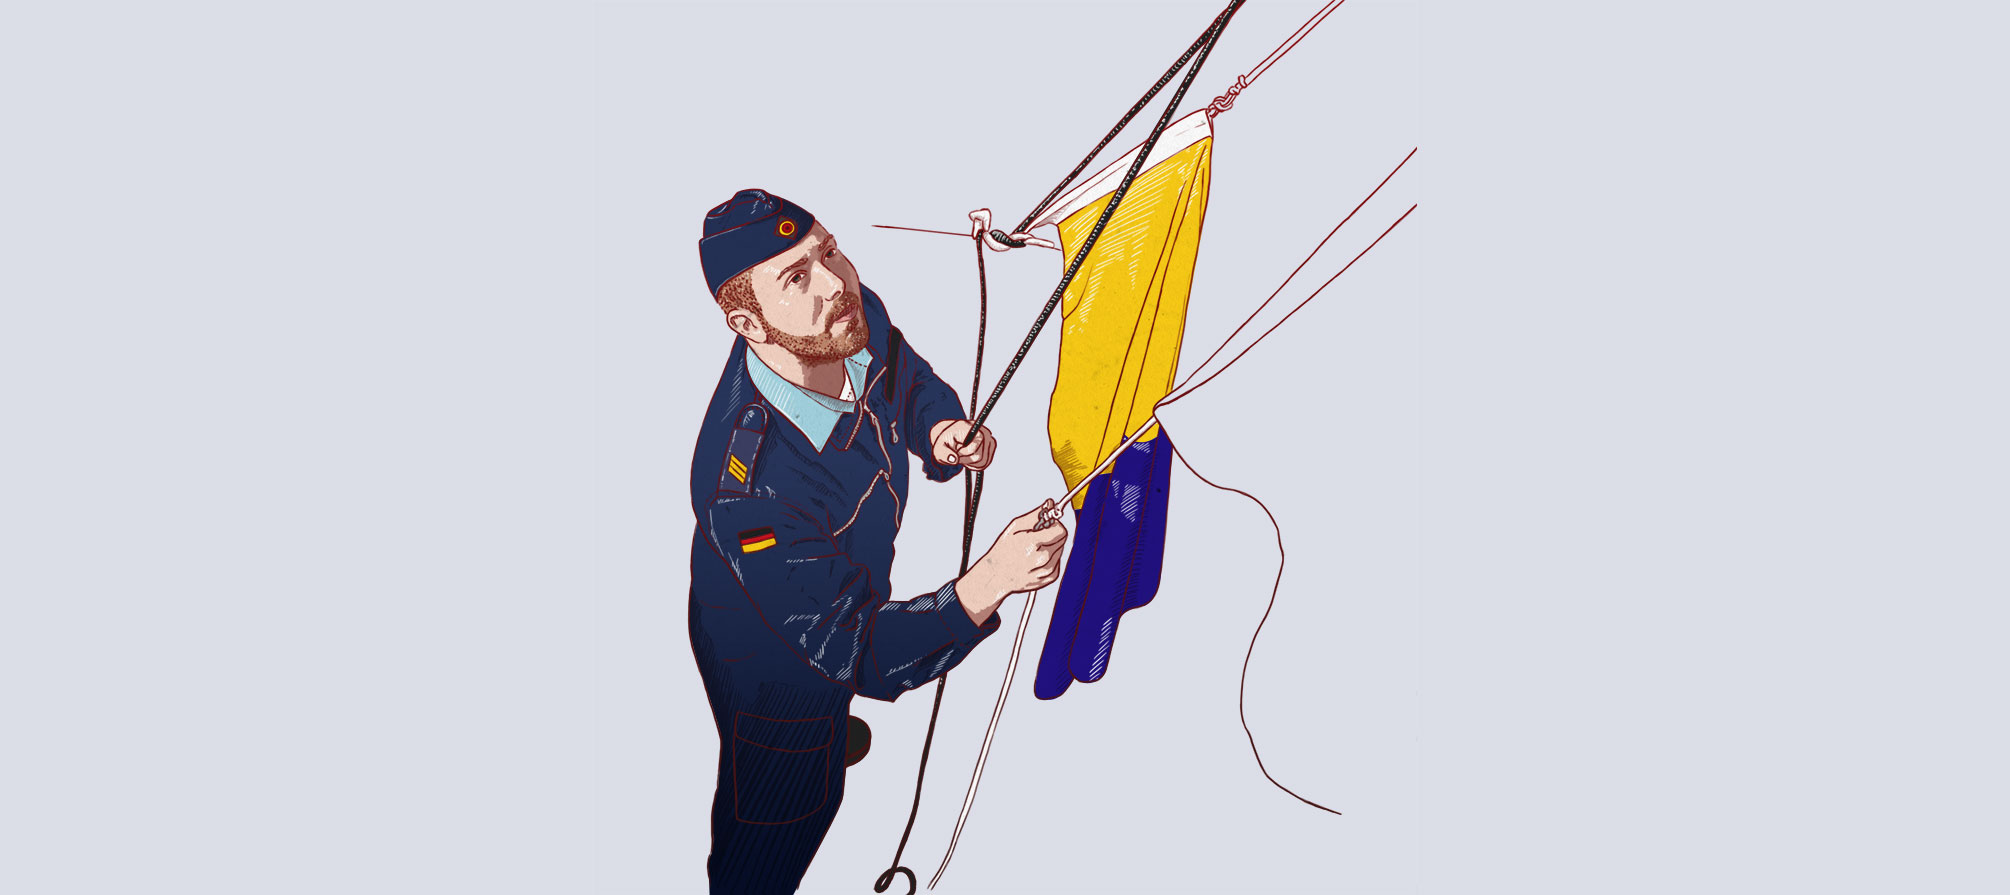 Illustration: Fahnen hissen, raising flags